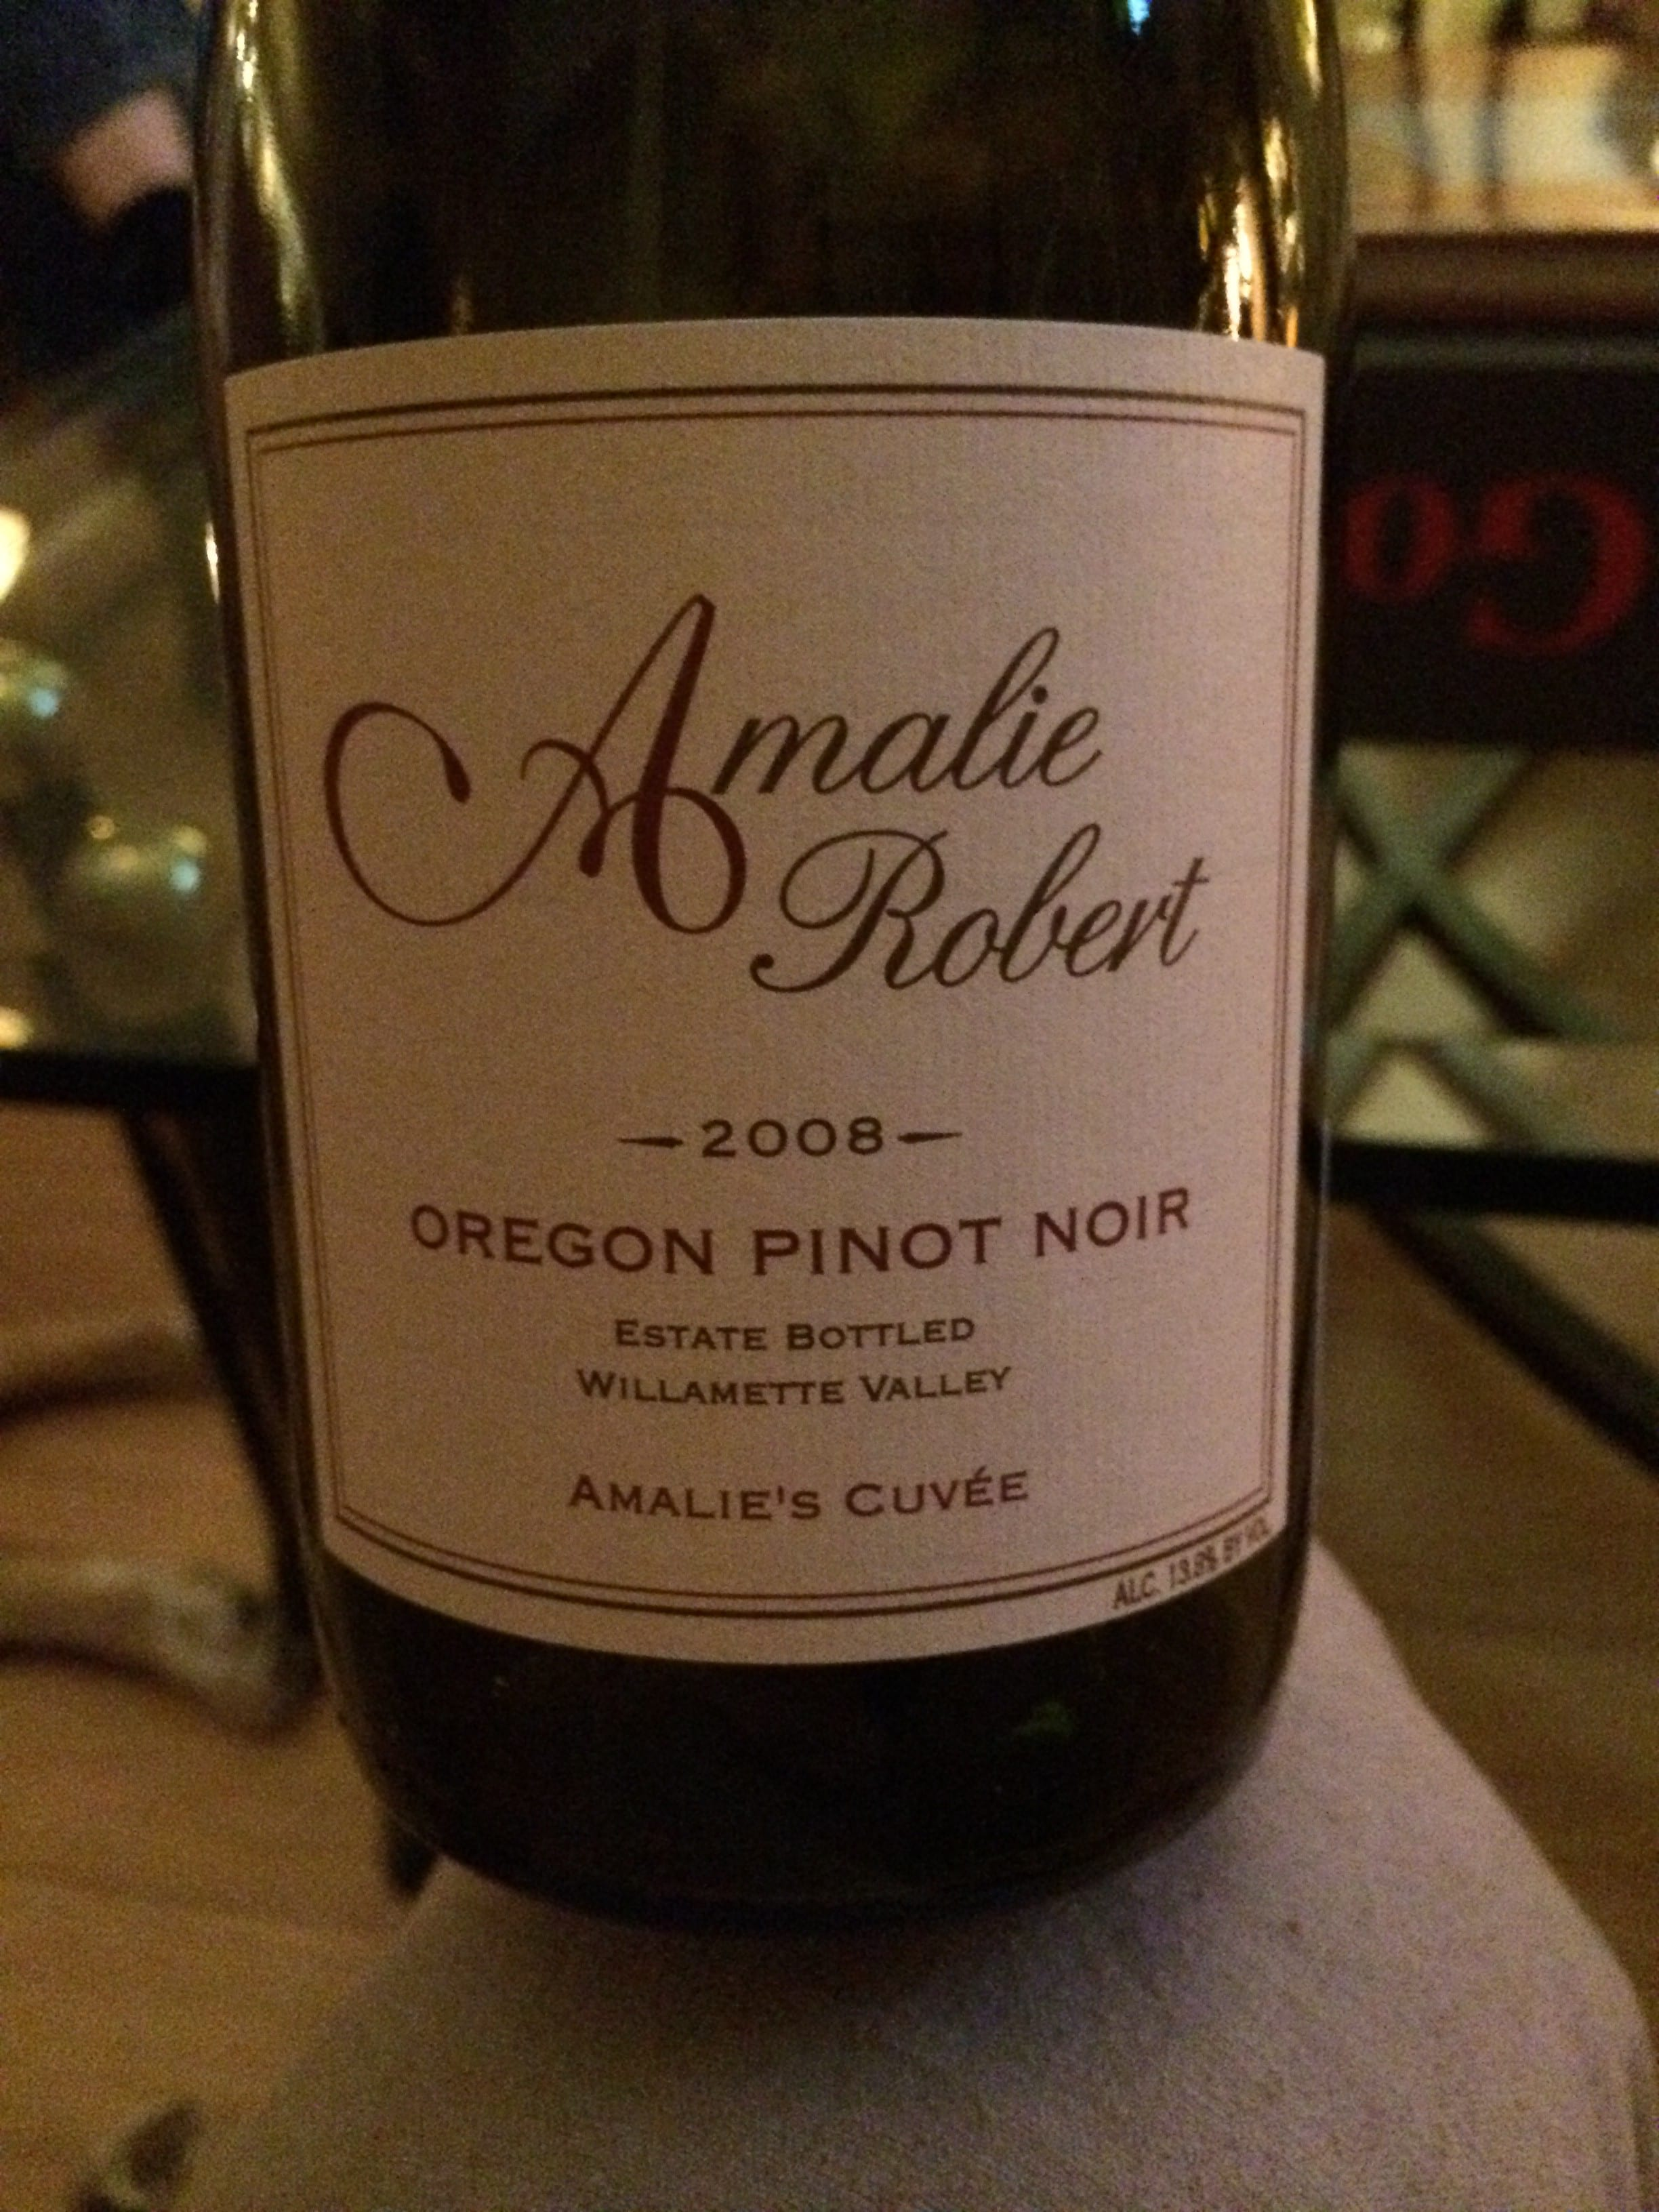 One of the best wines of the trip was a bottle of Amelie Robert 2008.